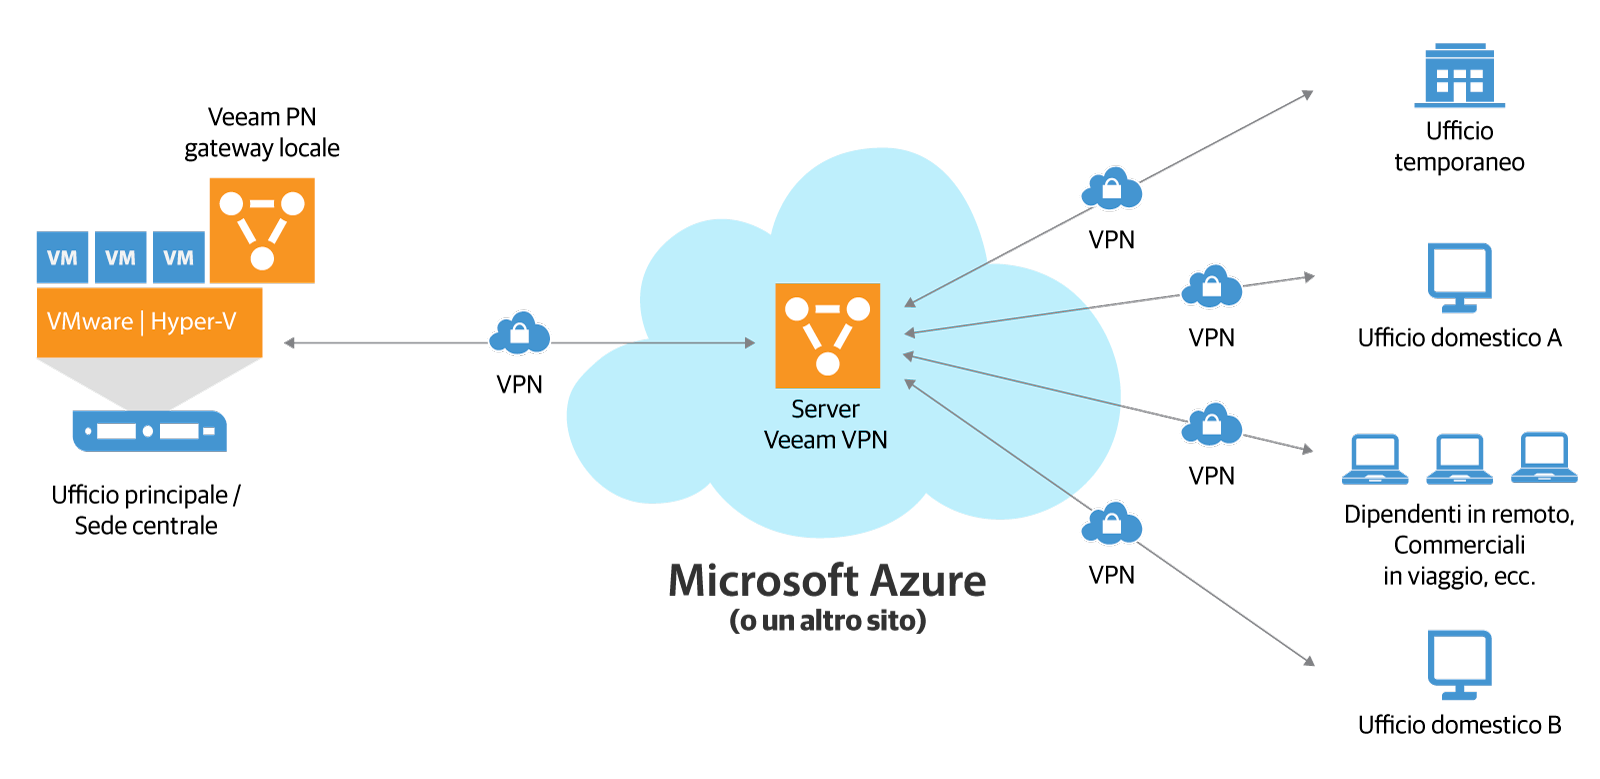 Veeam PN for Microsoft Azure effettua facilmente connessioni point-to-point tra client remoti e la sede principale. (VPN = virtual private network, Veeam PN = Veeam Powered Network).